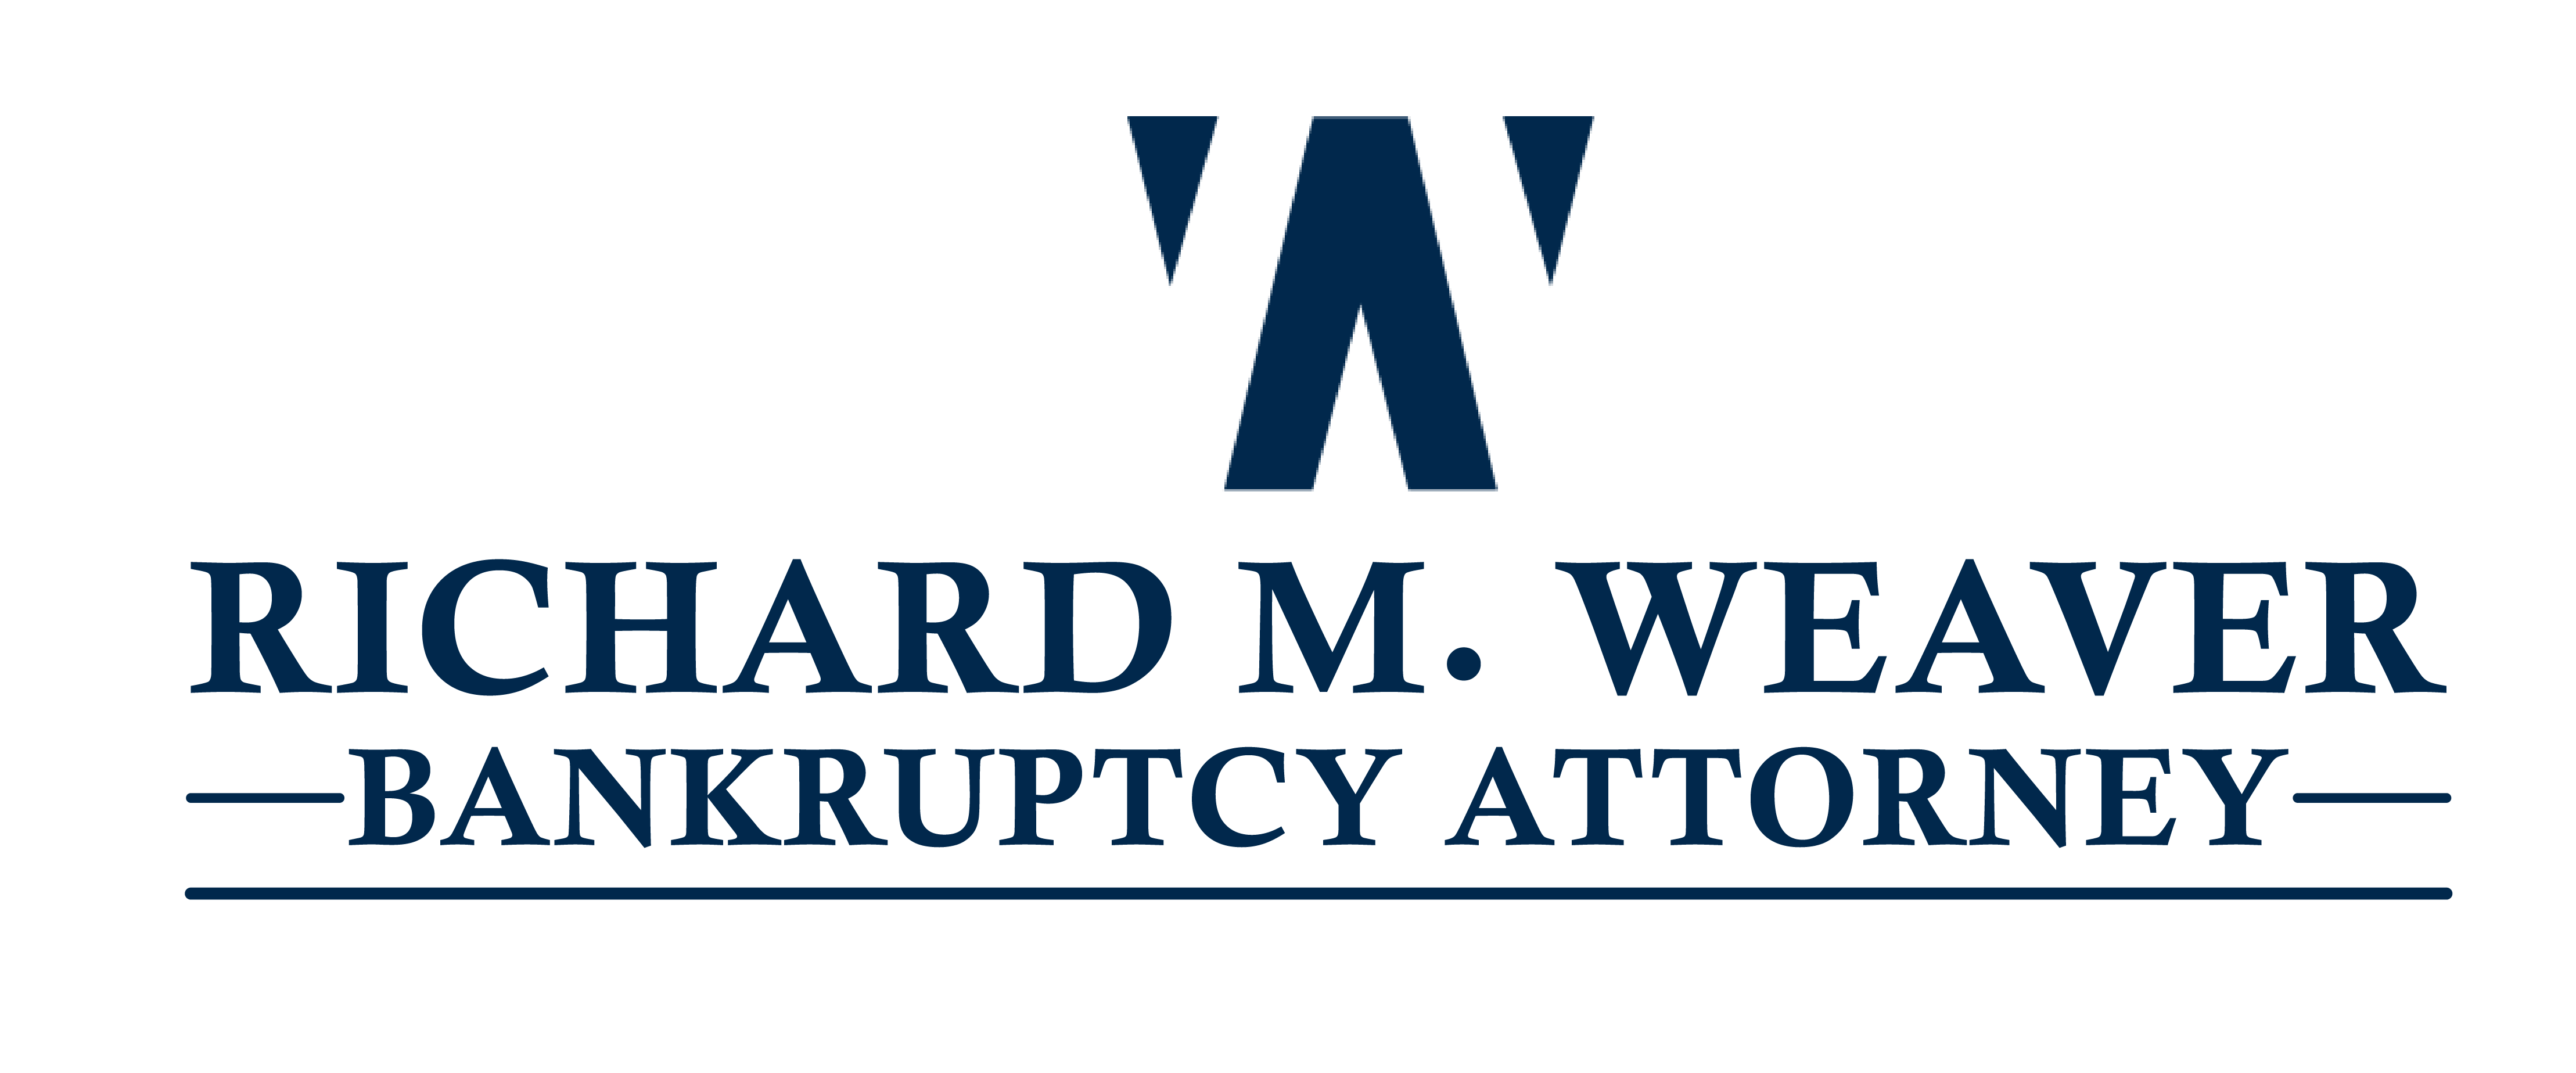 Richard M. Weaver Bankruptcy Attorney Helps Clients With Bankruptcy Issues in Dallas, TX